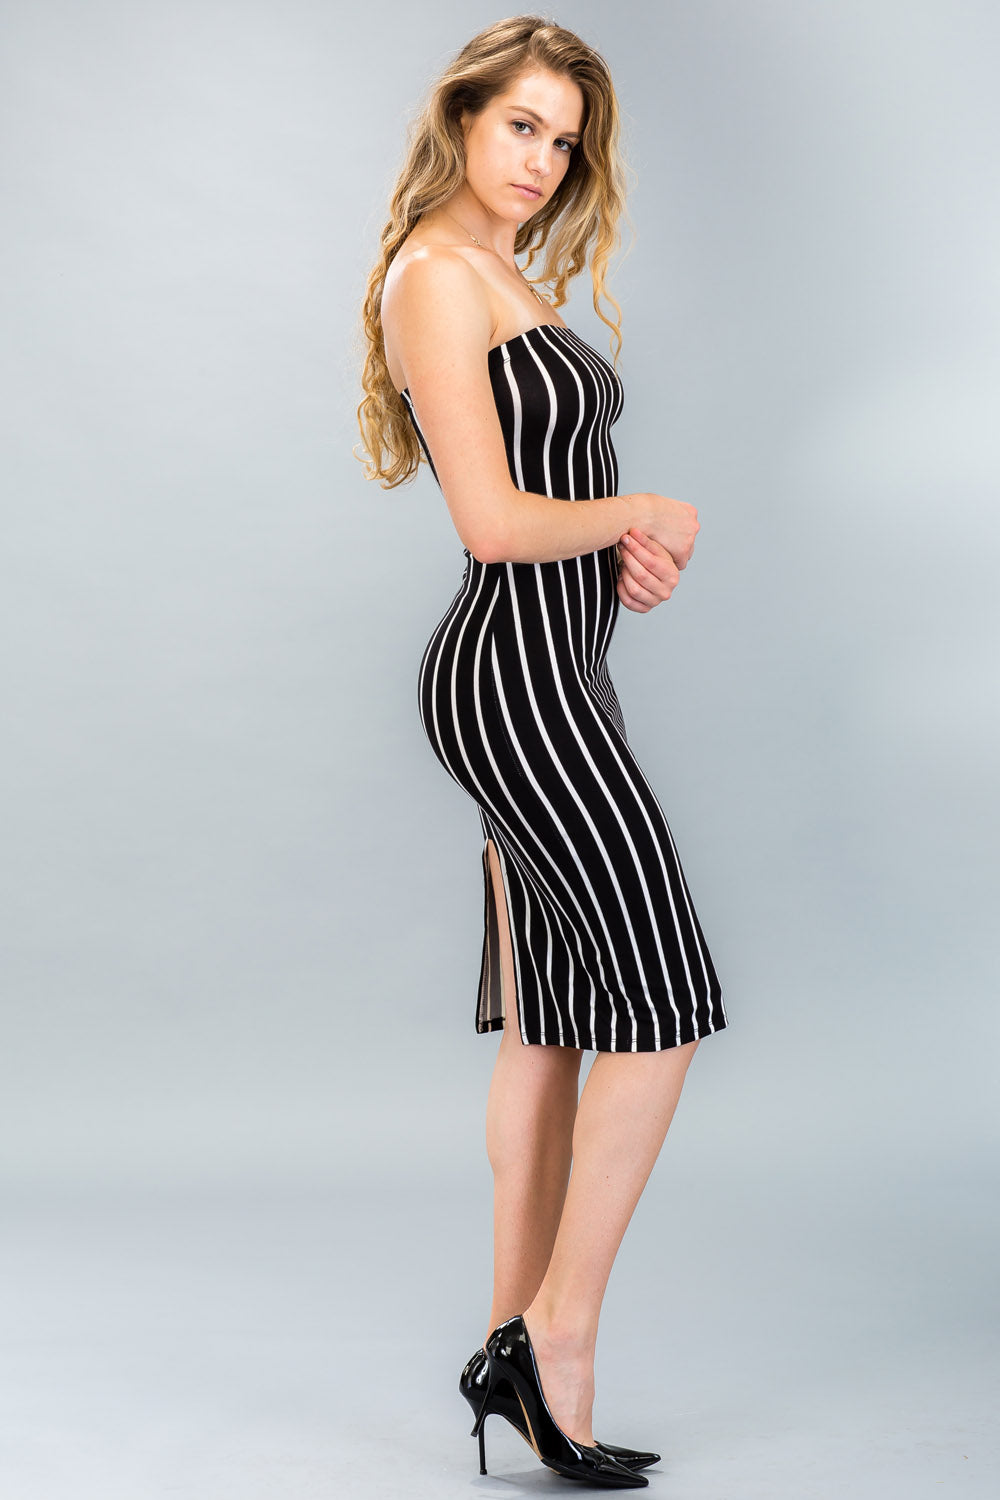 Dress - BD2125 - Capella Apparel